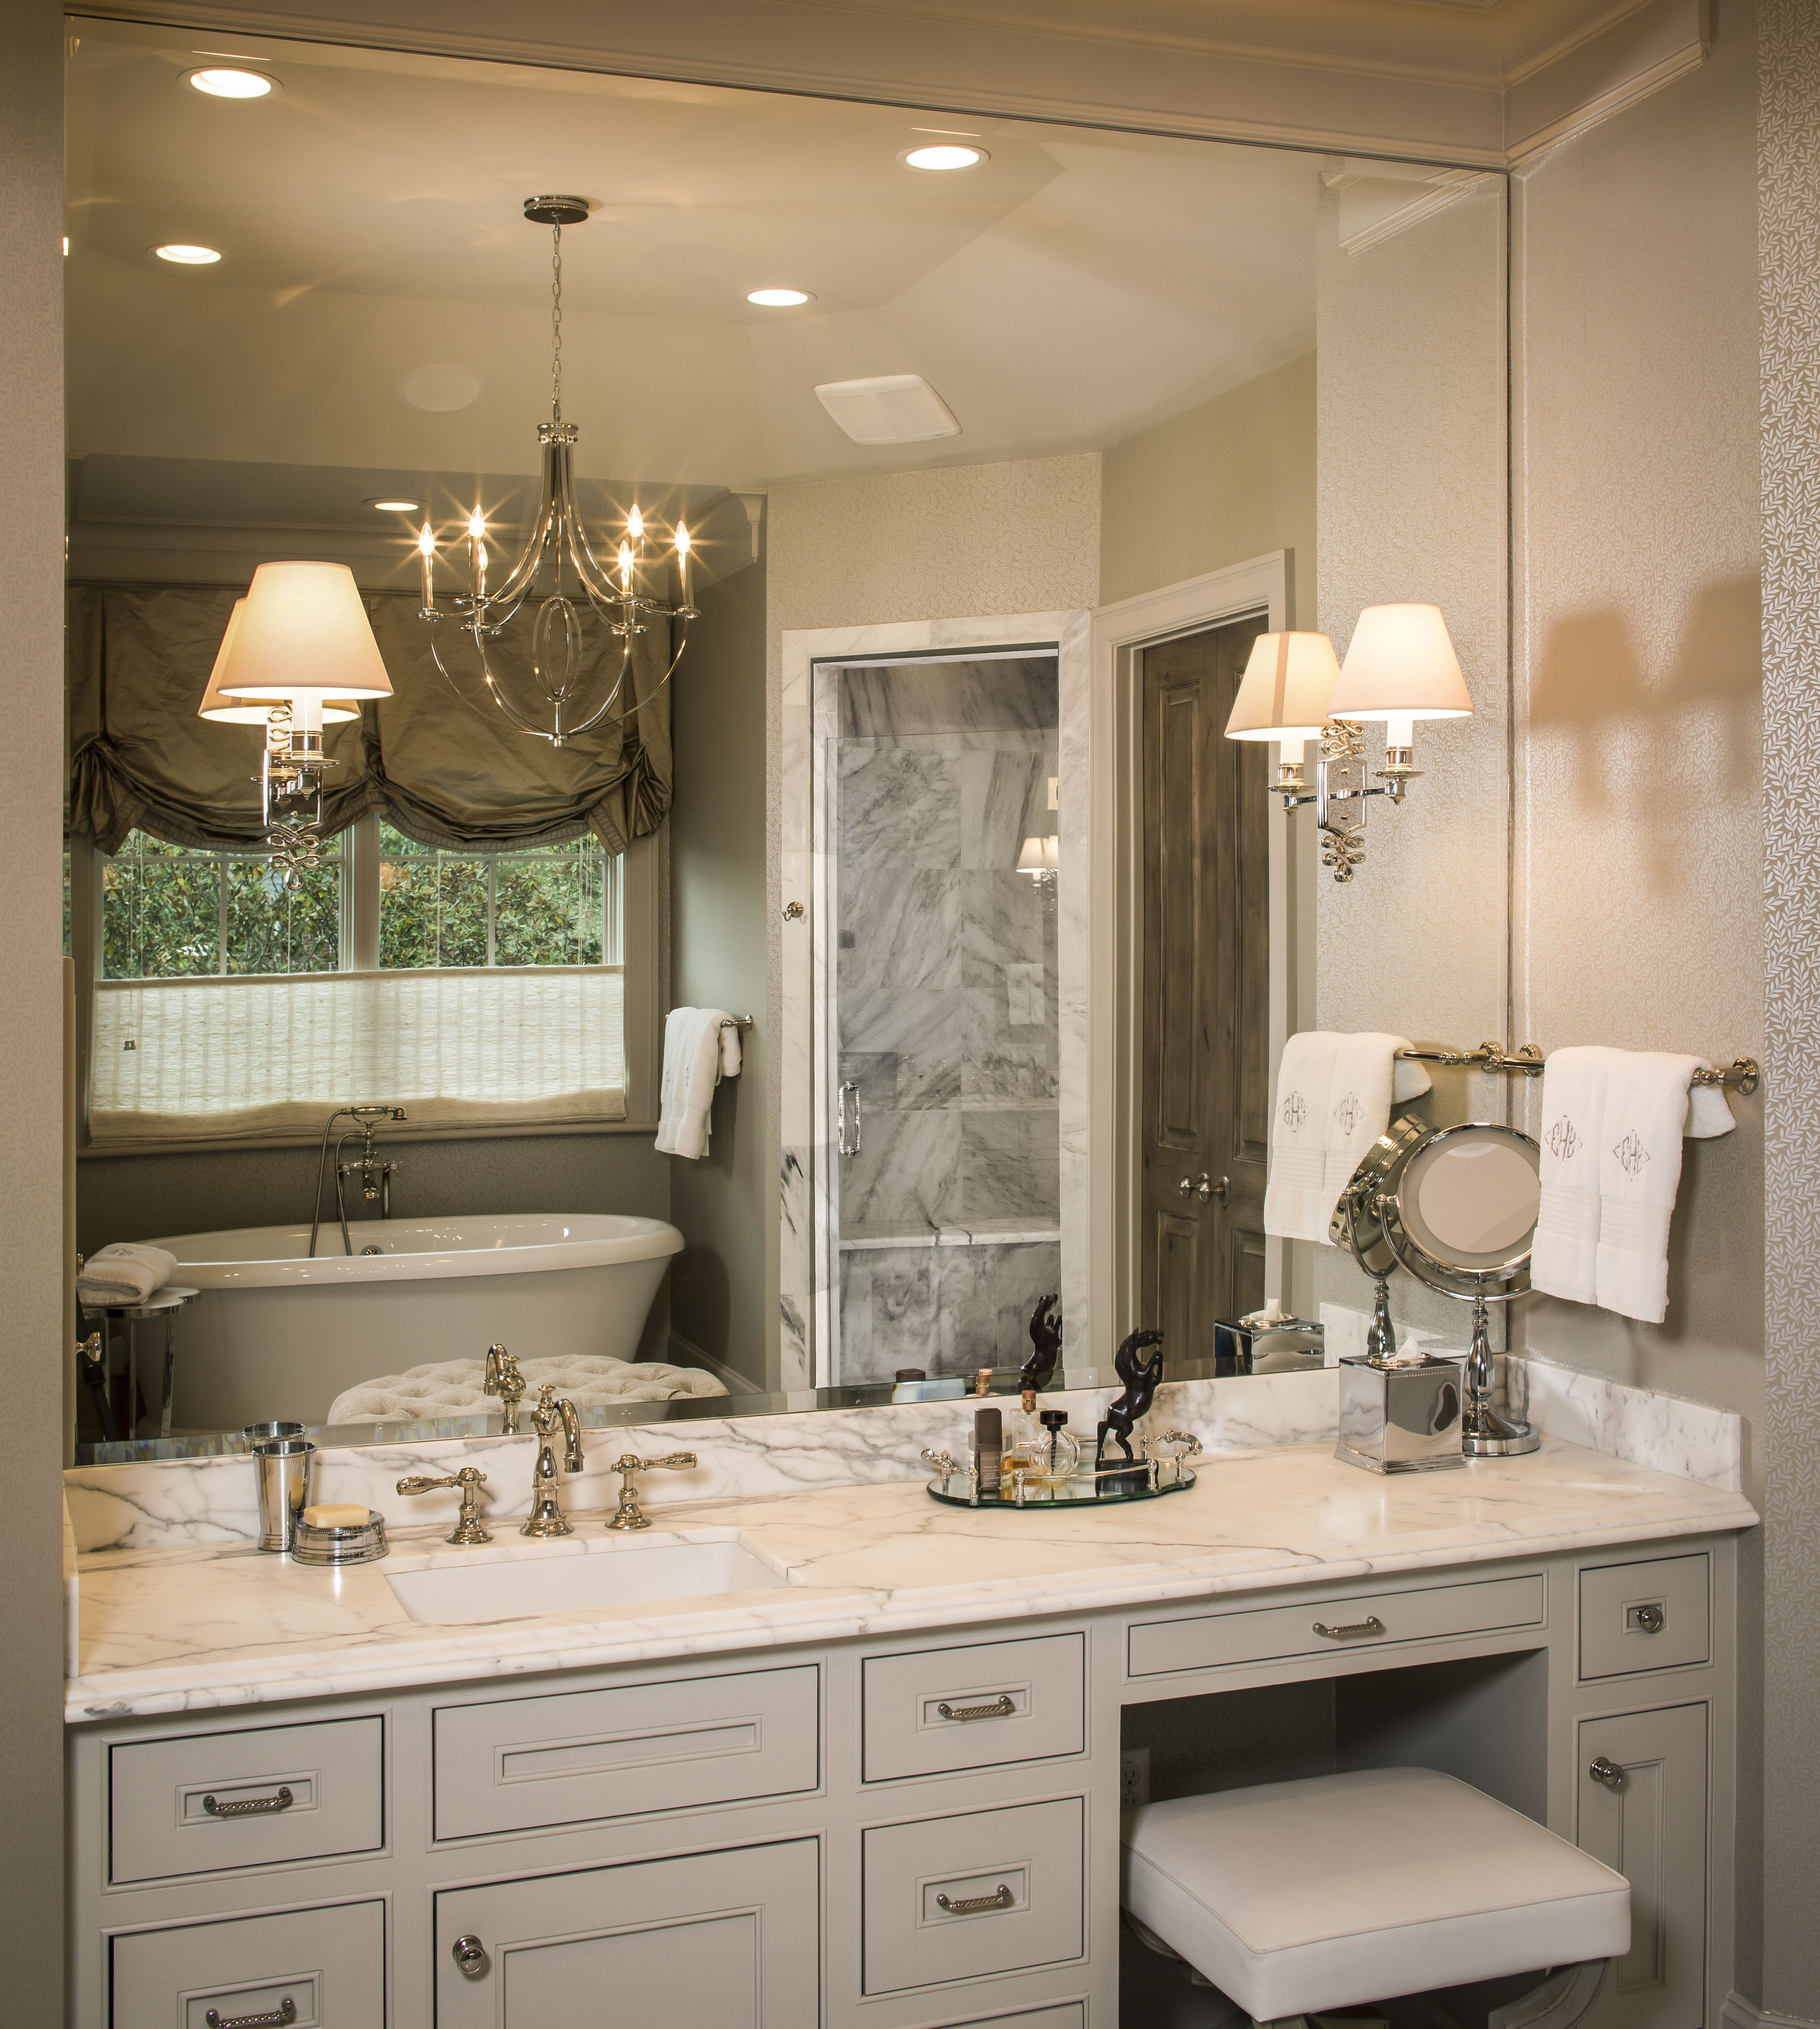 Cindy Witmer Designs In 2019: White And Grey Bathrooms Ideas